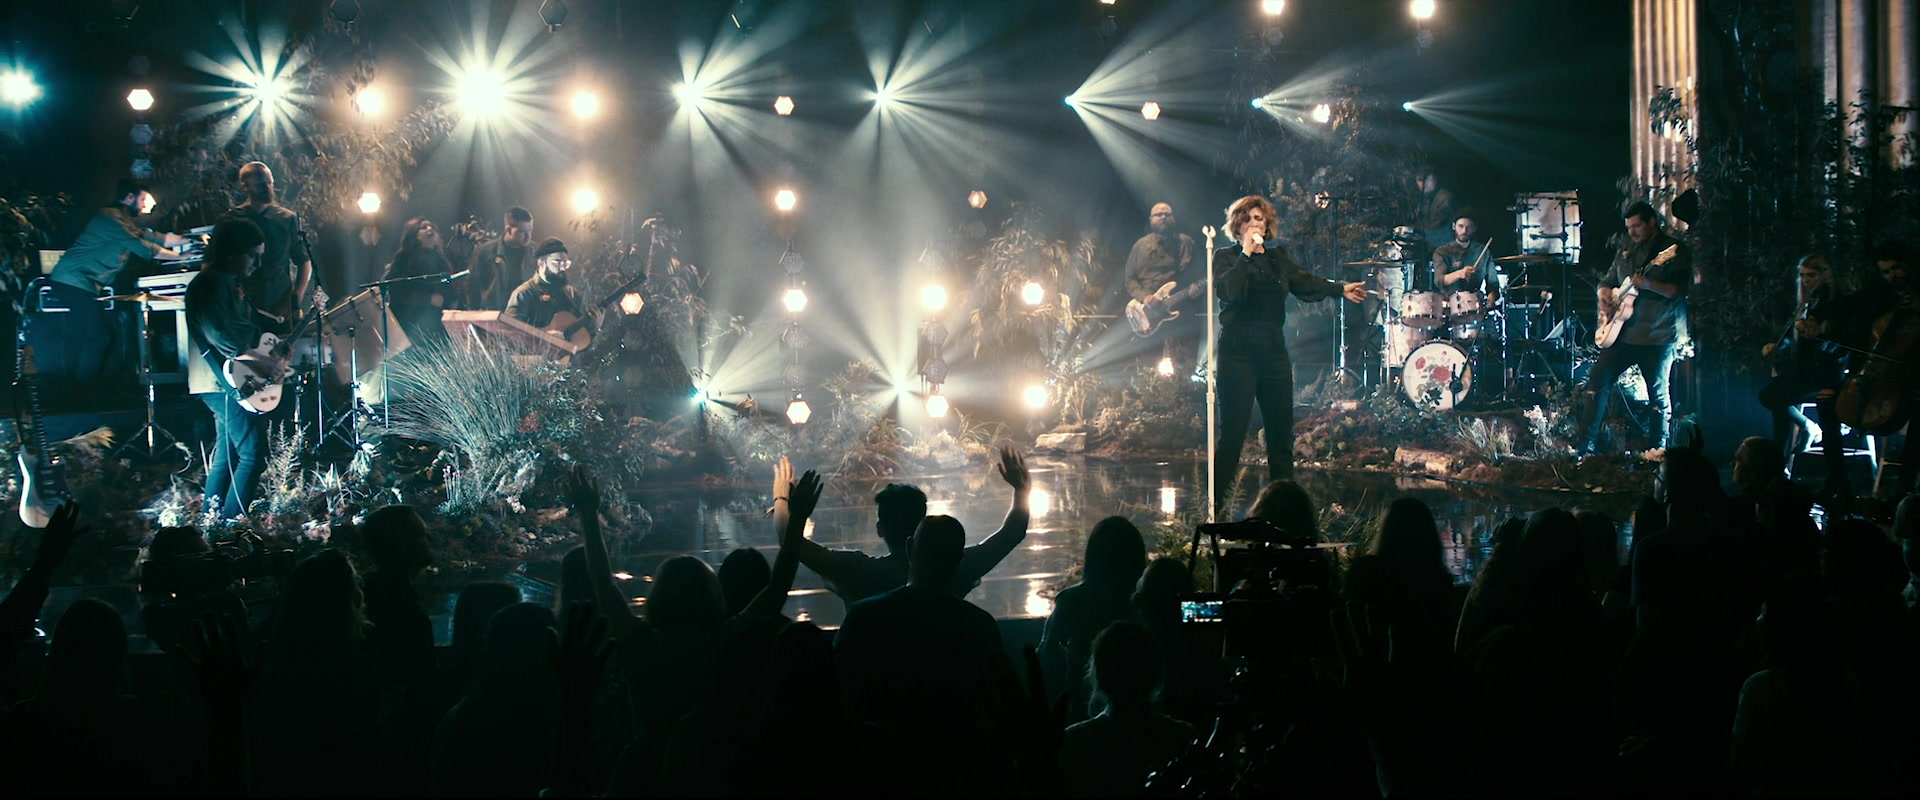 Kim Walker Smith Wild Heart Live At The Cascade Theatre In Redding CA 2020 1080p WEB-DL DDP2.0 H264-WEBLE